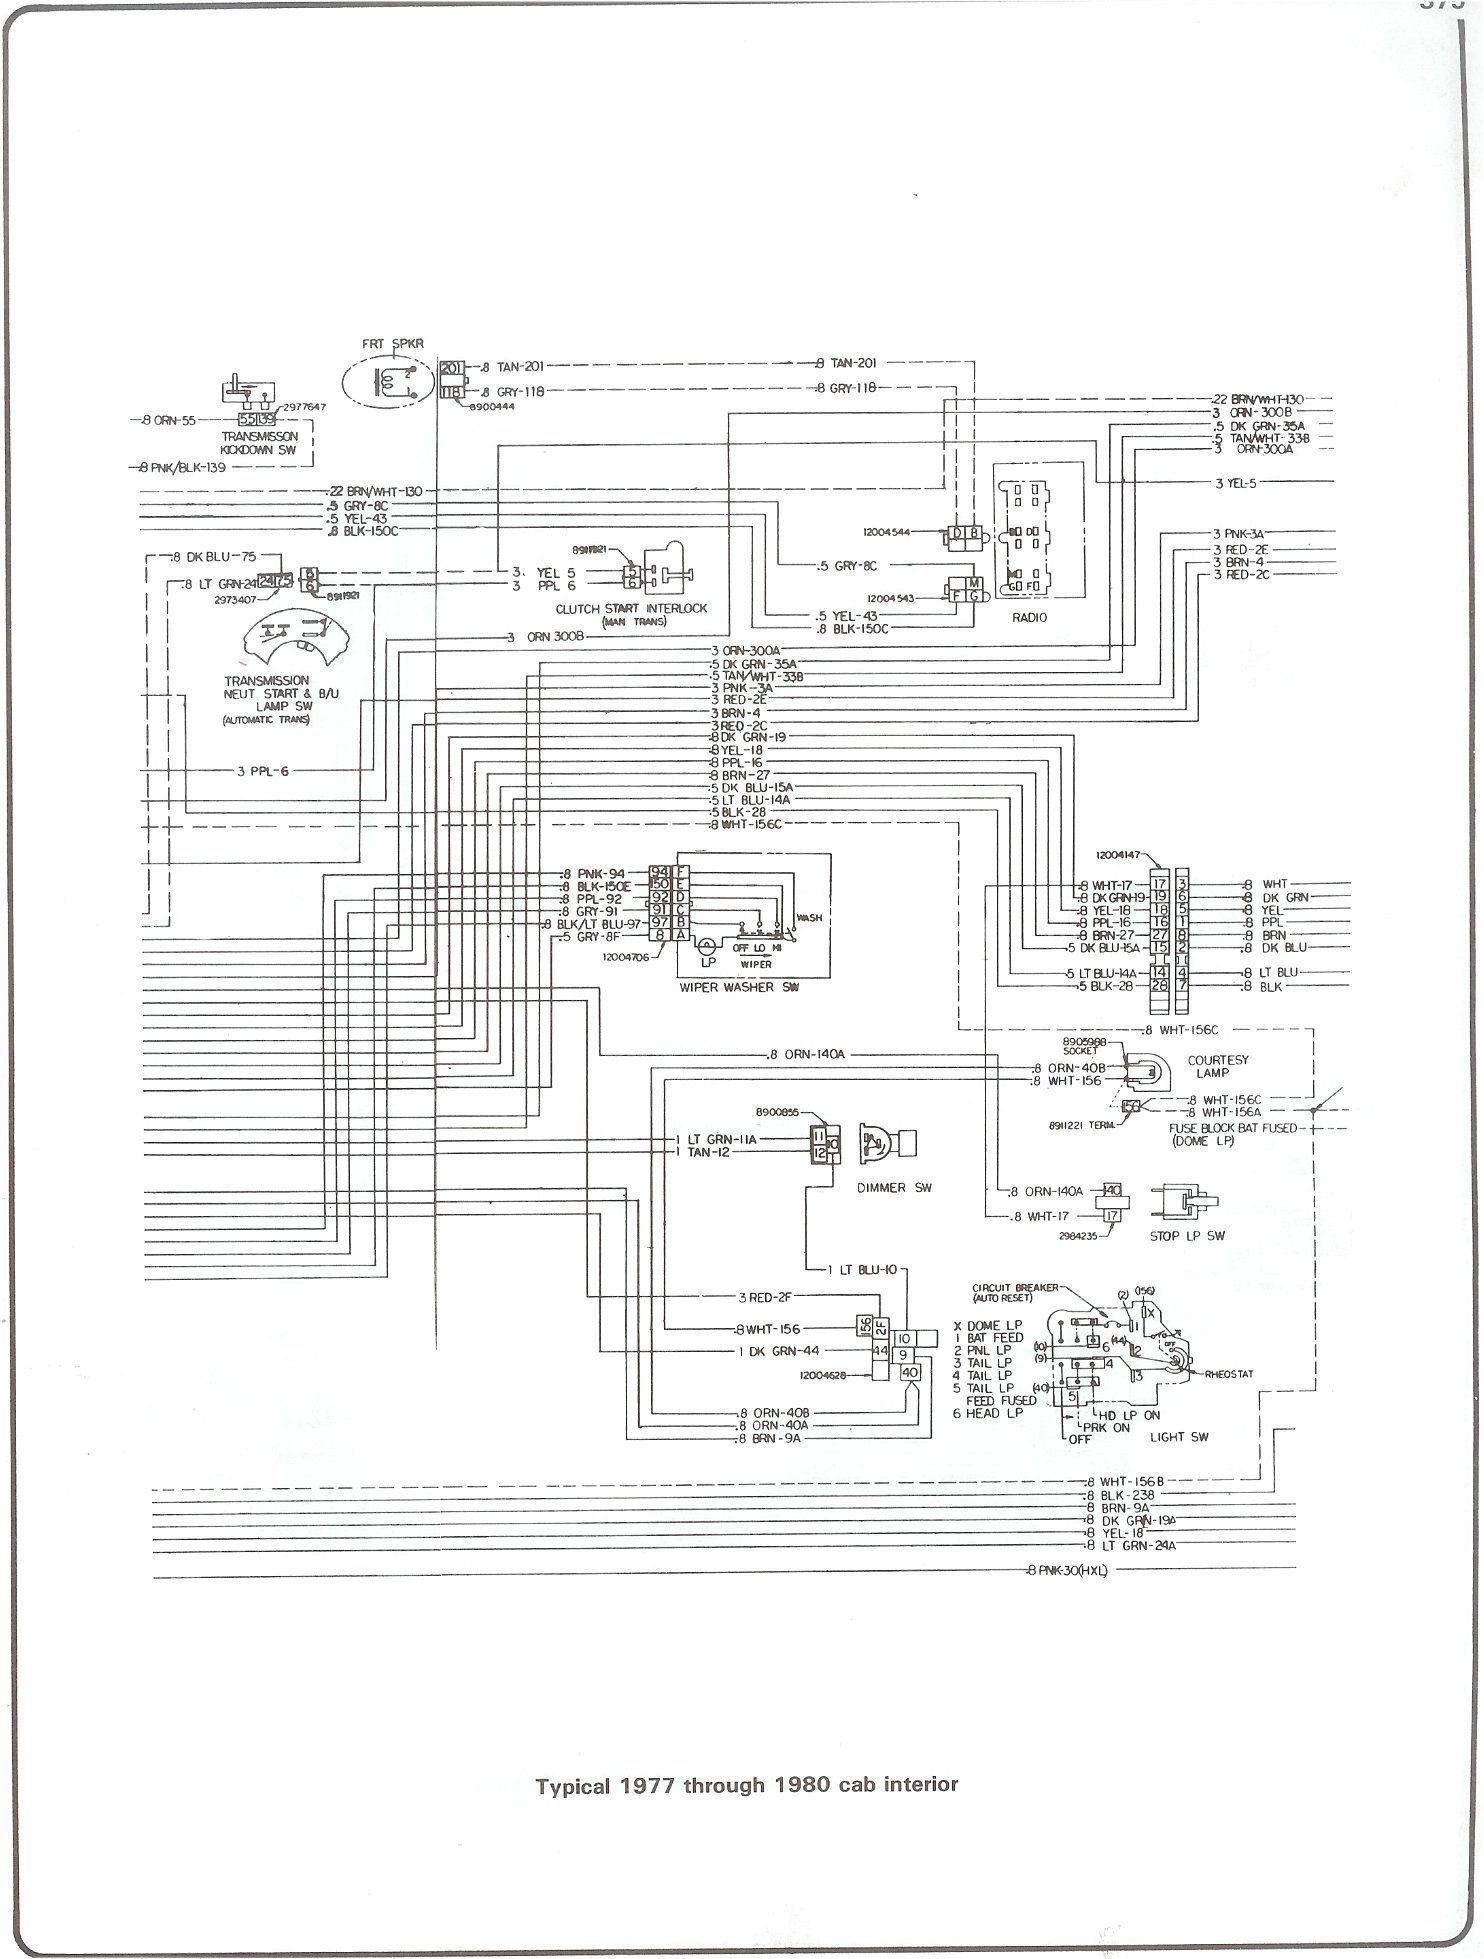 77 80_cab_inter complete 73 87 wiring diagrams 1982 chevy truck engine wiring diagram at alyssarenee.co